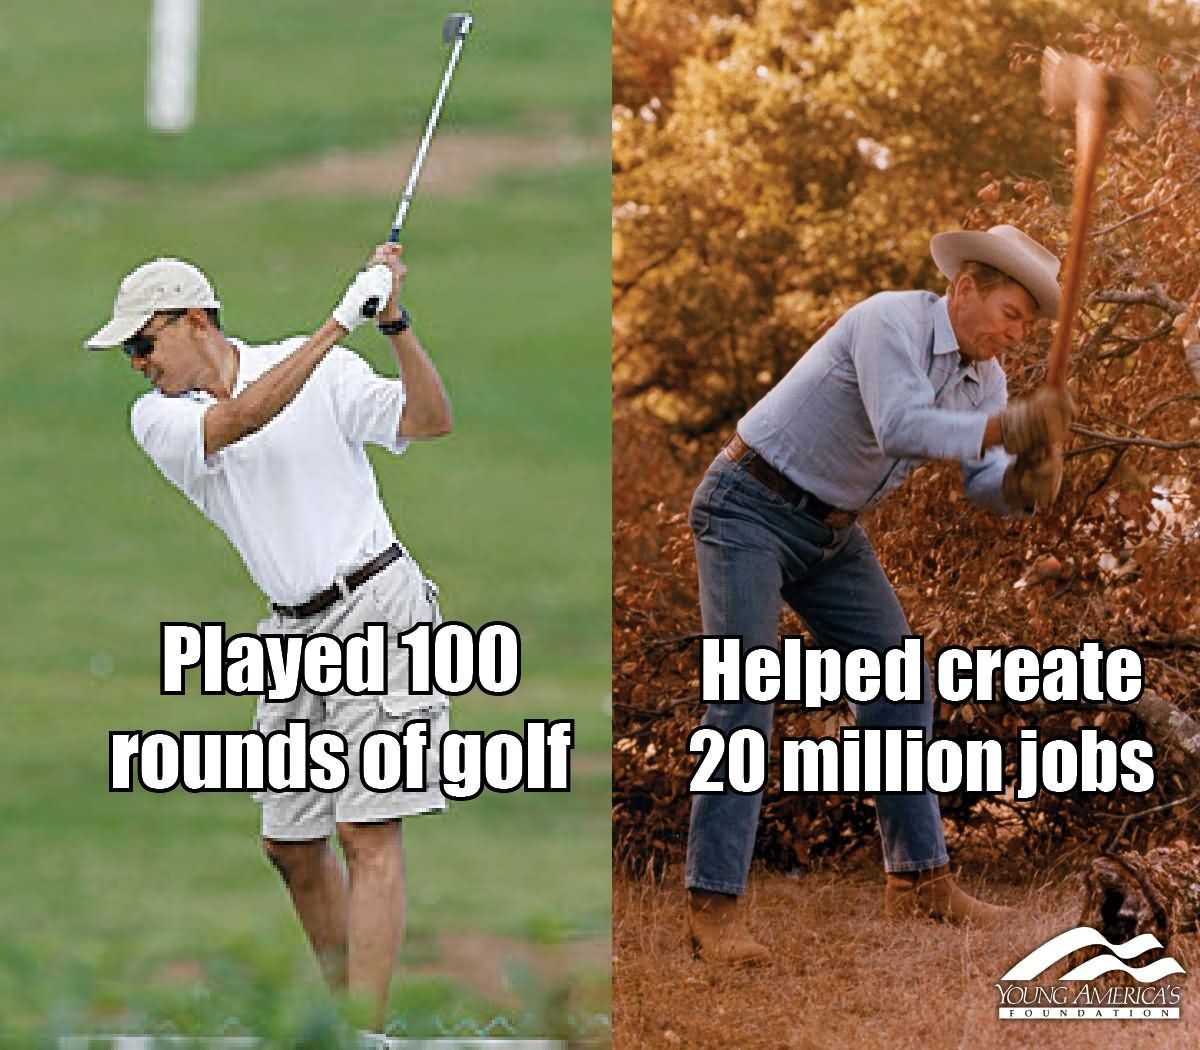 Golf Memes played 100 rounds of golf